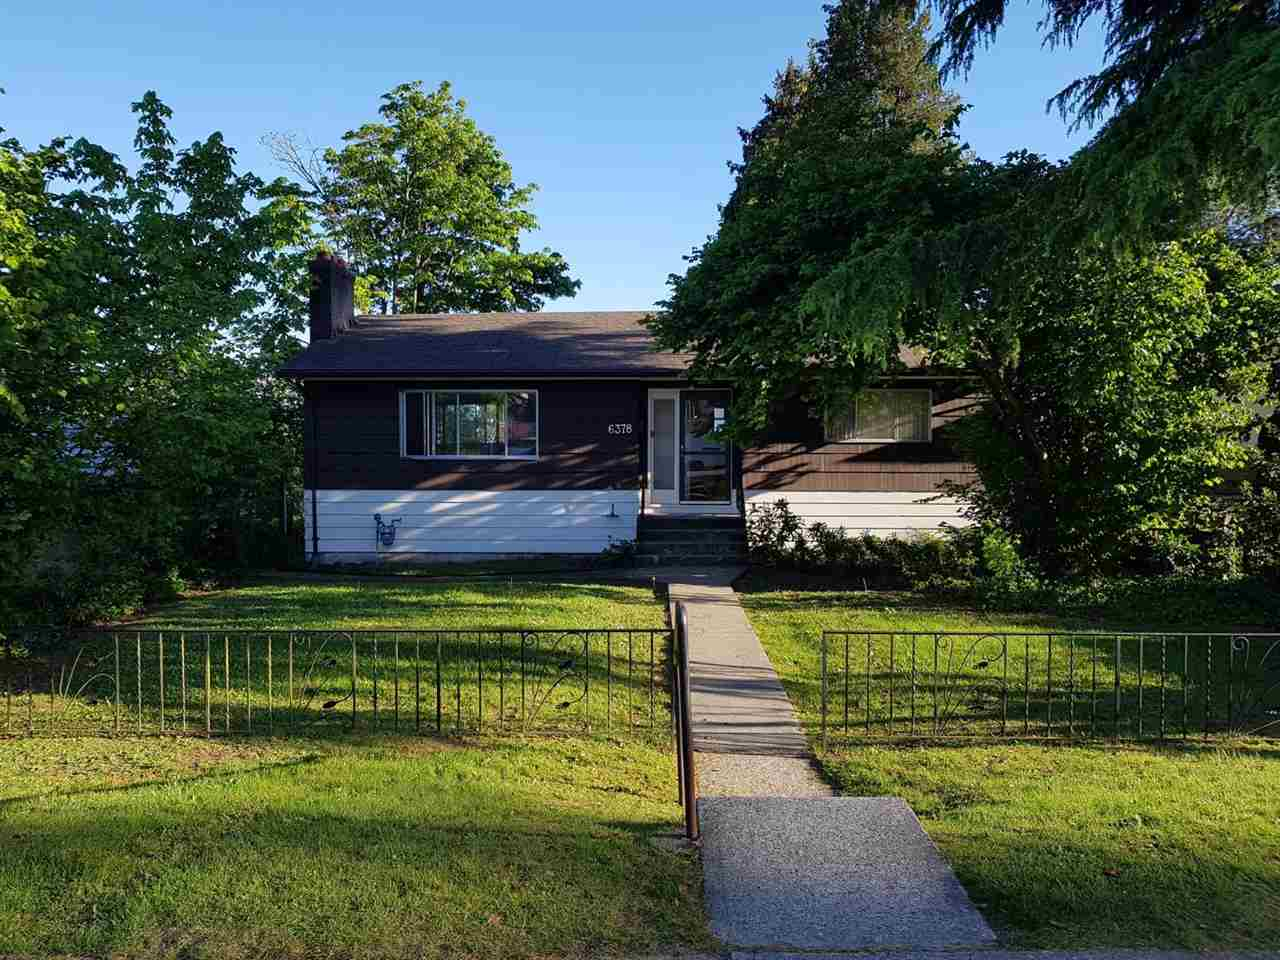 Main Photo: 6378 NEVILLE Street in Burnaby: South Slope House for sale (Burnaby South)  : MLS® # R2170763